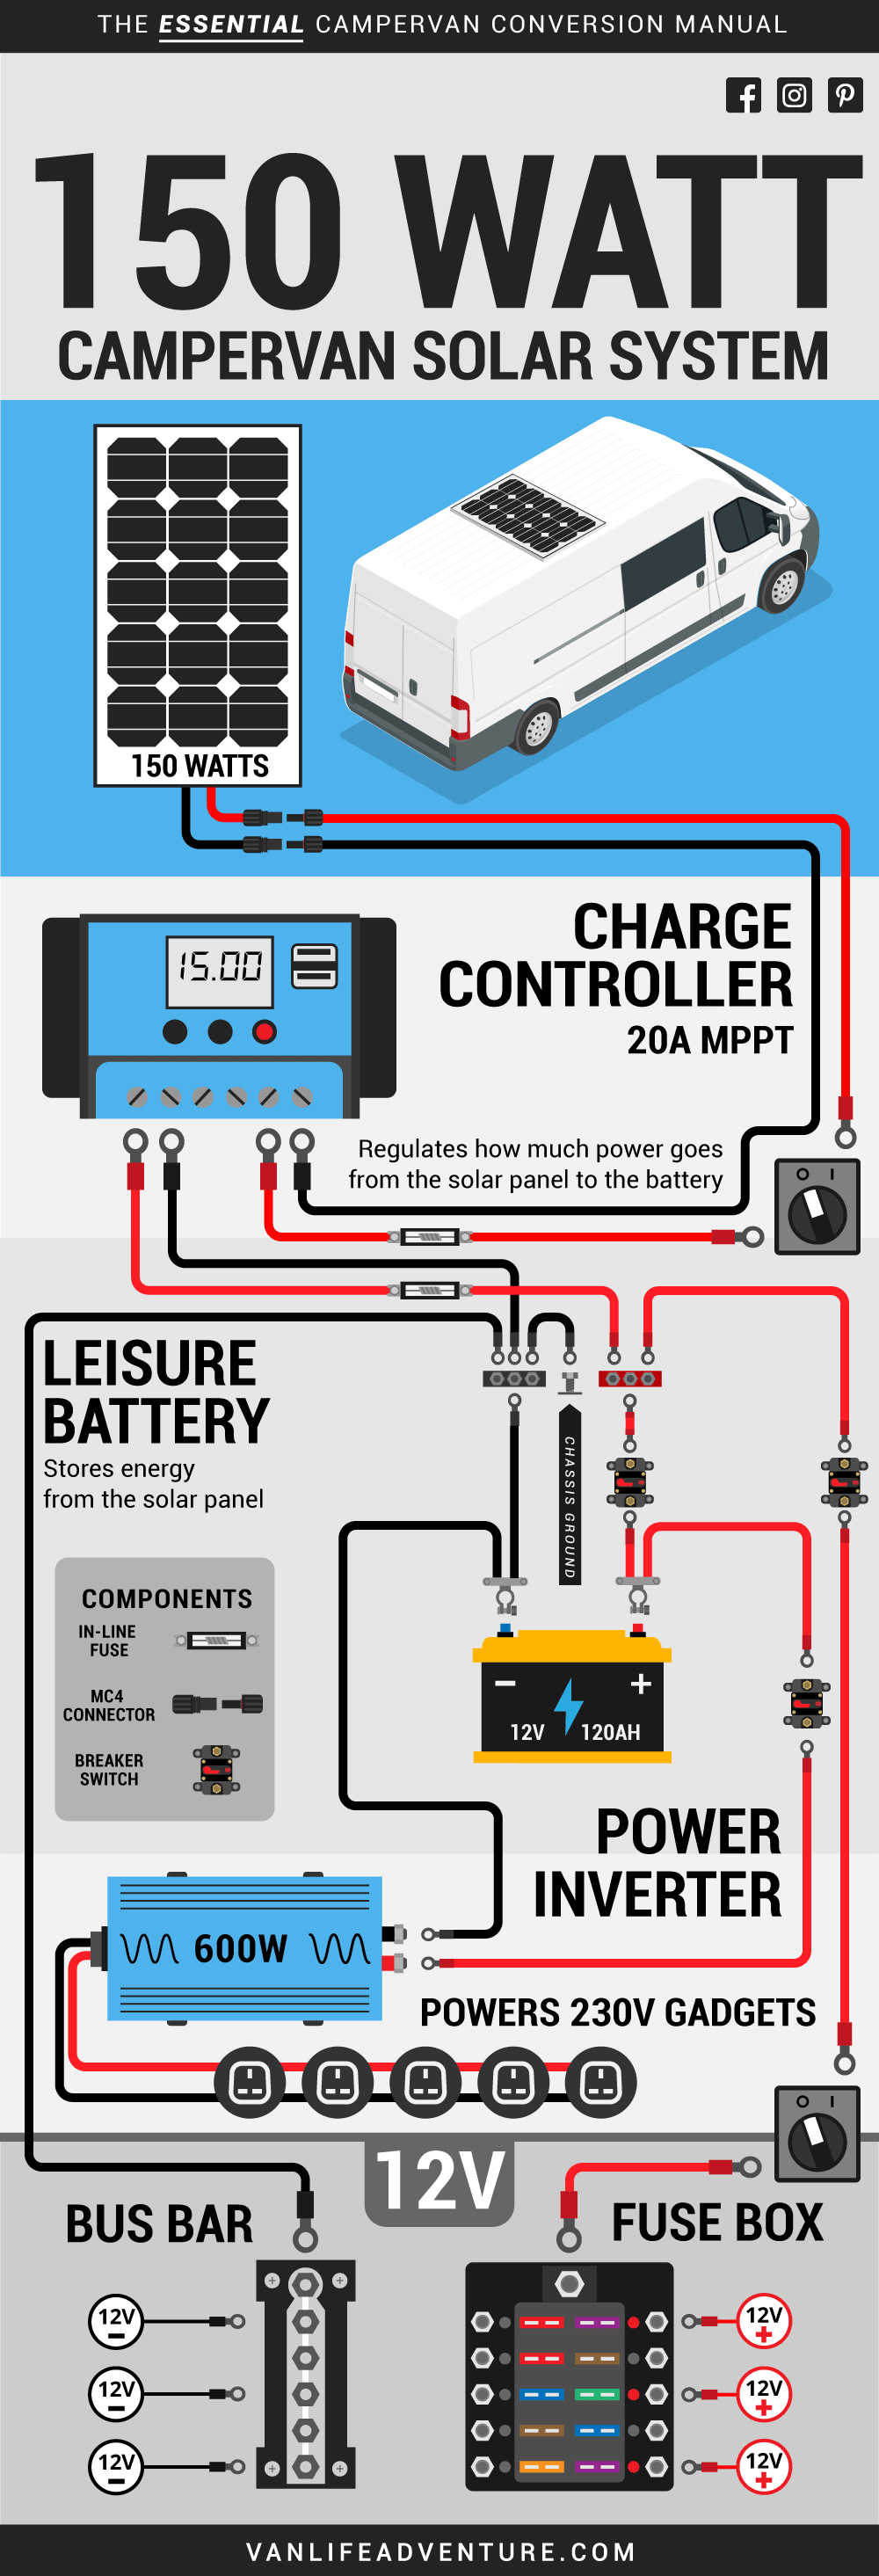 Solar Power Wiring Diagram 150 Watt System Aboard A Campervan In 2020 Solar Rv Solar Power Campervan